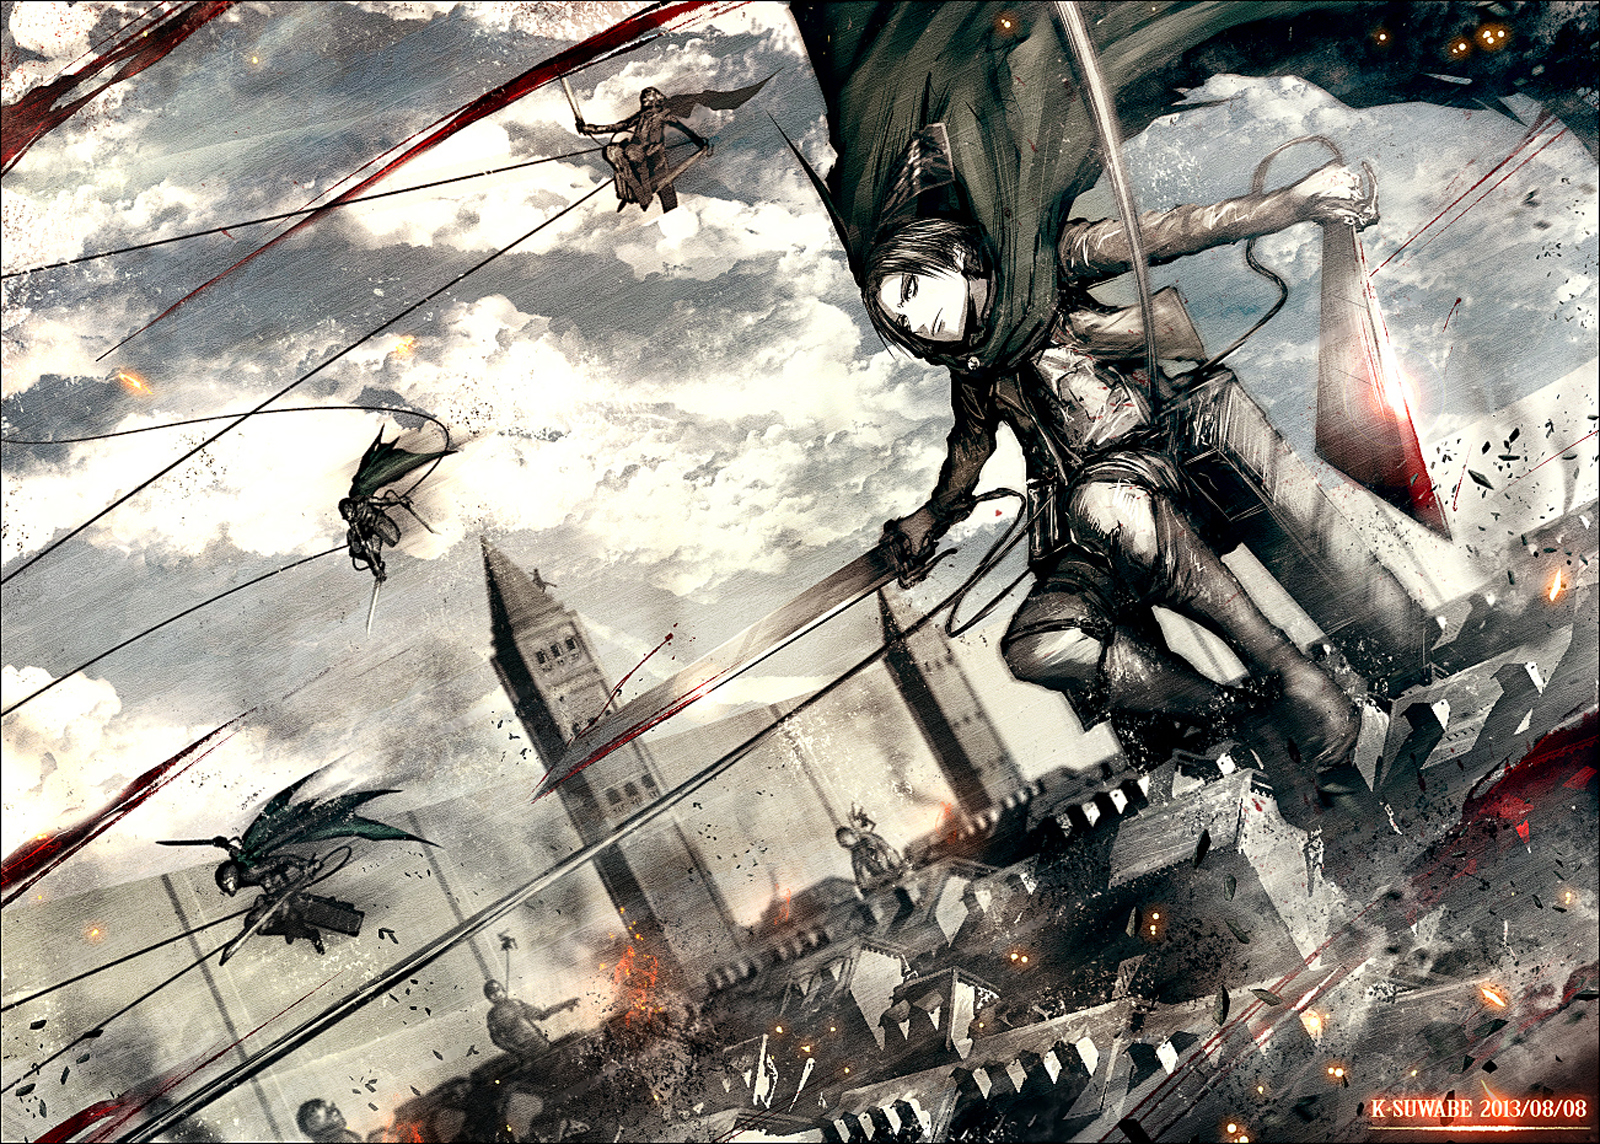 Levi Blade 3D Maneuver Gear 2122 HD Wallpaper 1600x1144